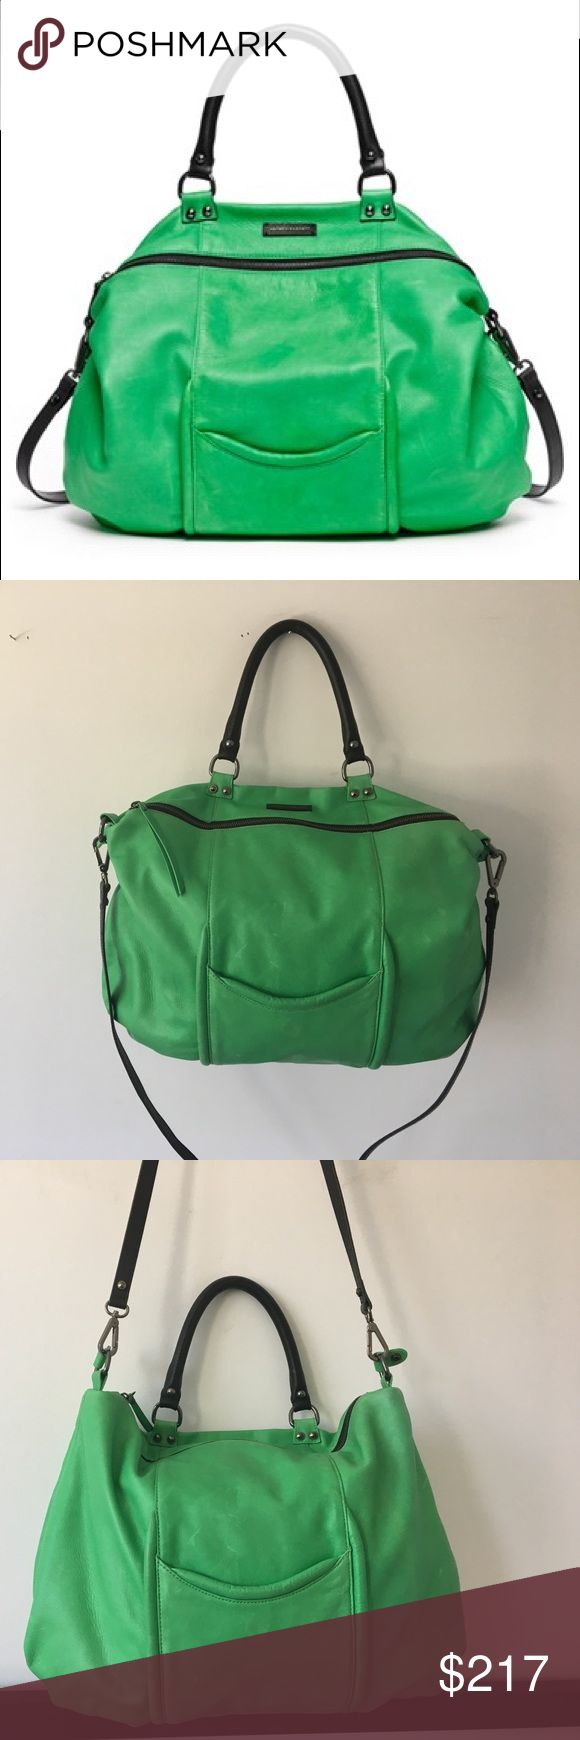 100% Leather Green Hayden Harnett Shoulder Bag Authentic Leather Hayden- Harnett Lime Green Shoulder/ Crossbody Bag. Removable Crossbody Strap. Includes original Hayden- Harnett Storage Bag.                  100% Black Cotton lining.                                                      Has 2 pockets on both sides of the exterior, 3 pockets and 1 zipper on interior for essentials.                                 Measures 14 inches from zipper to bottom and 16 inches from side to side.  Minor…